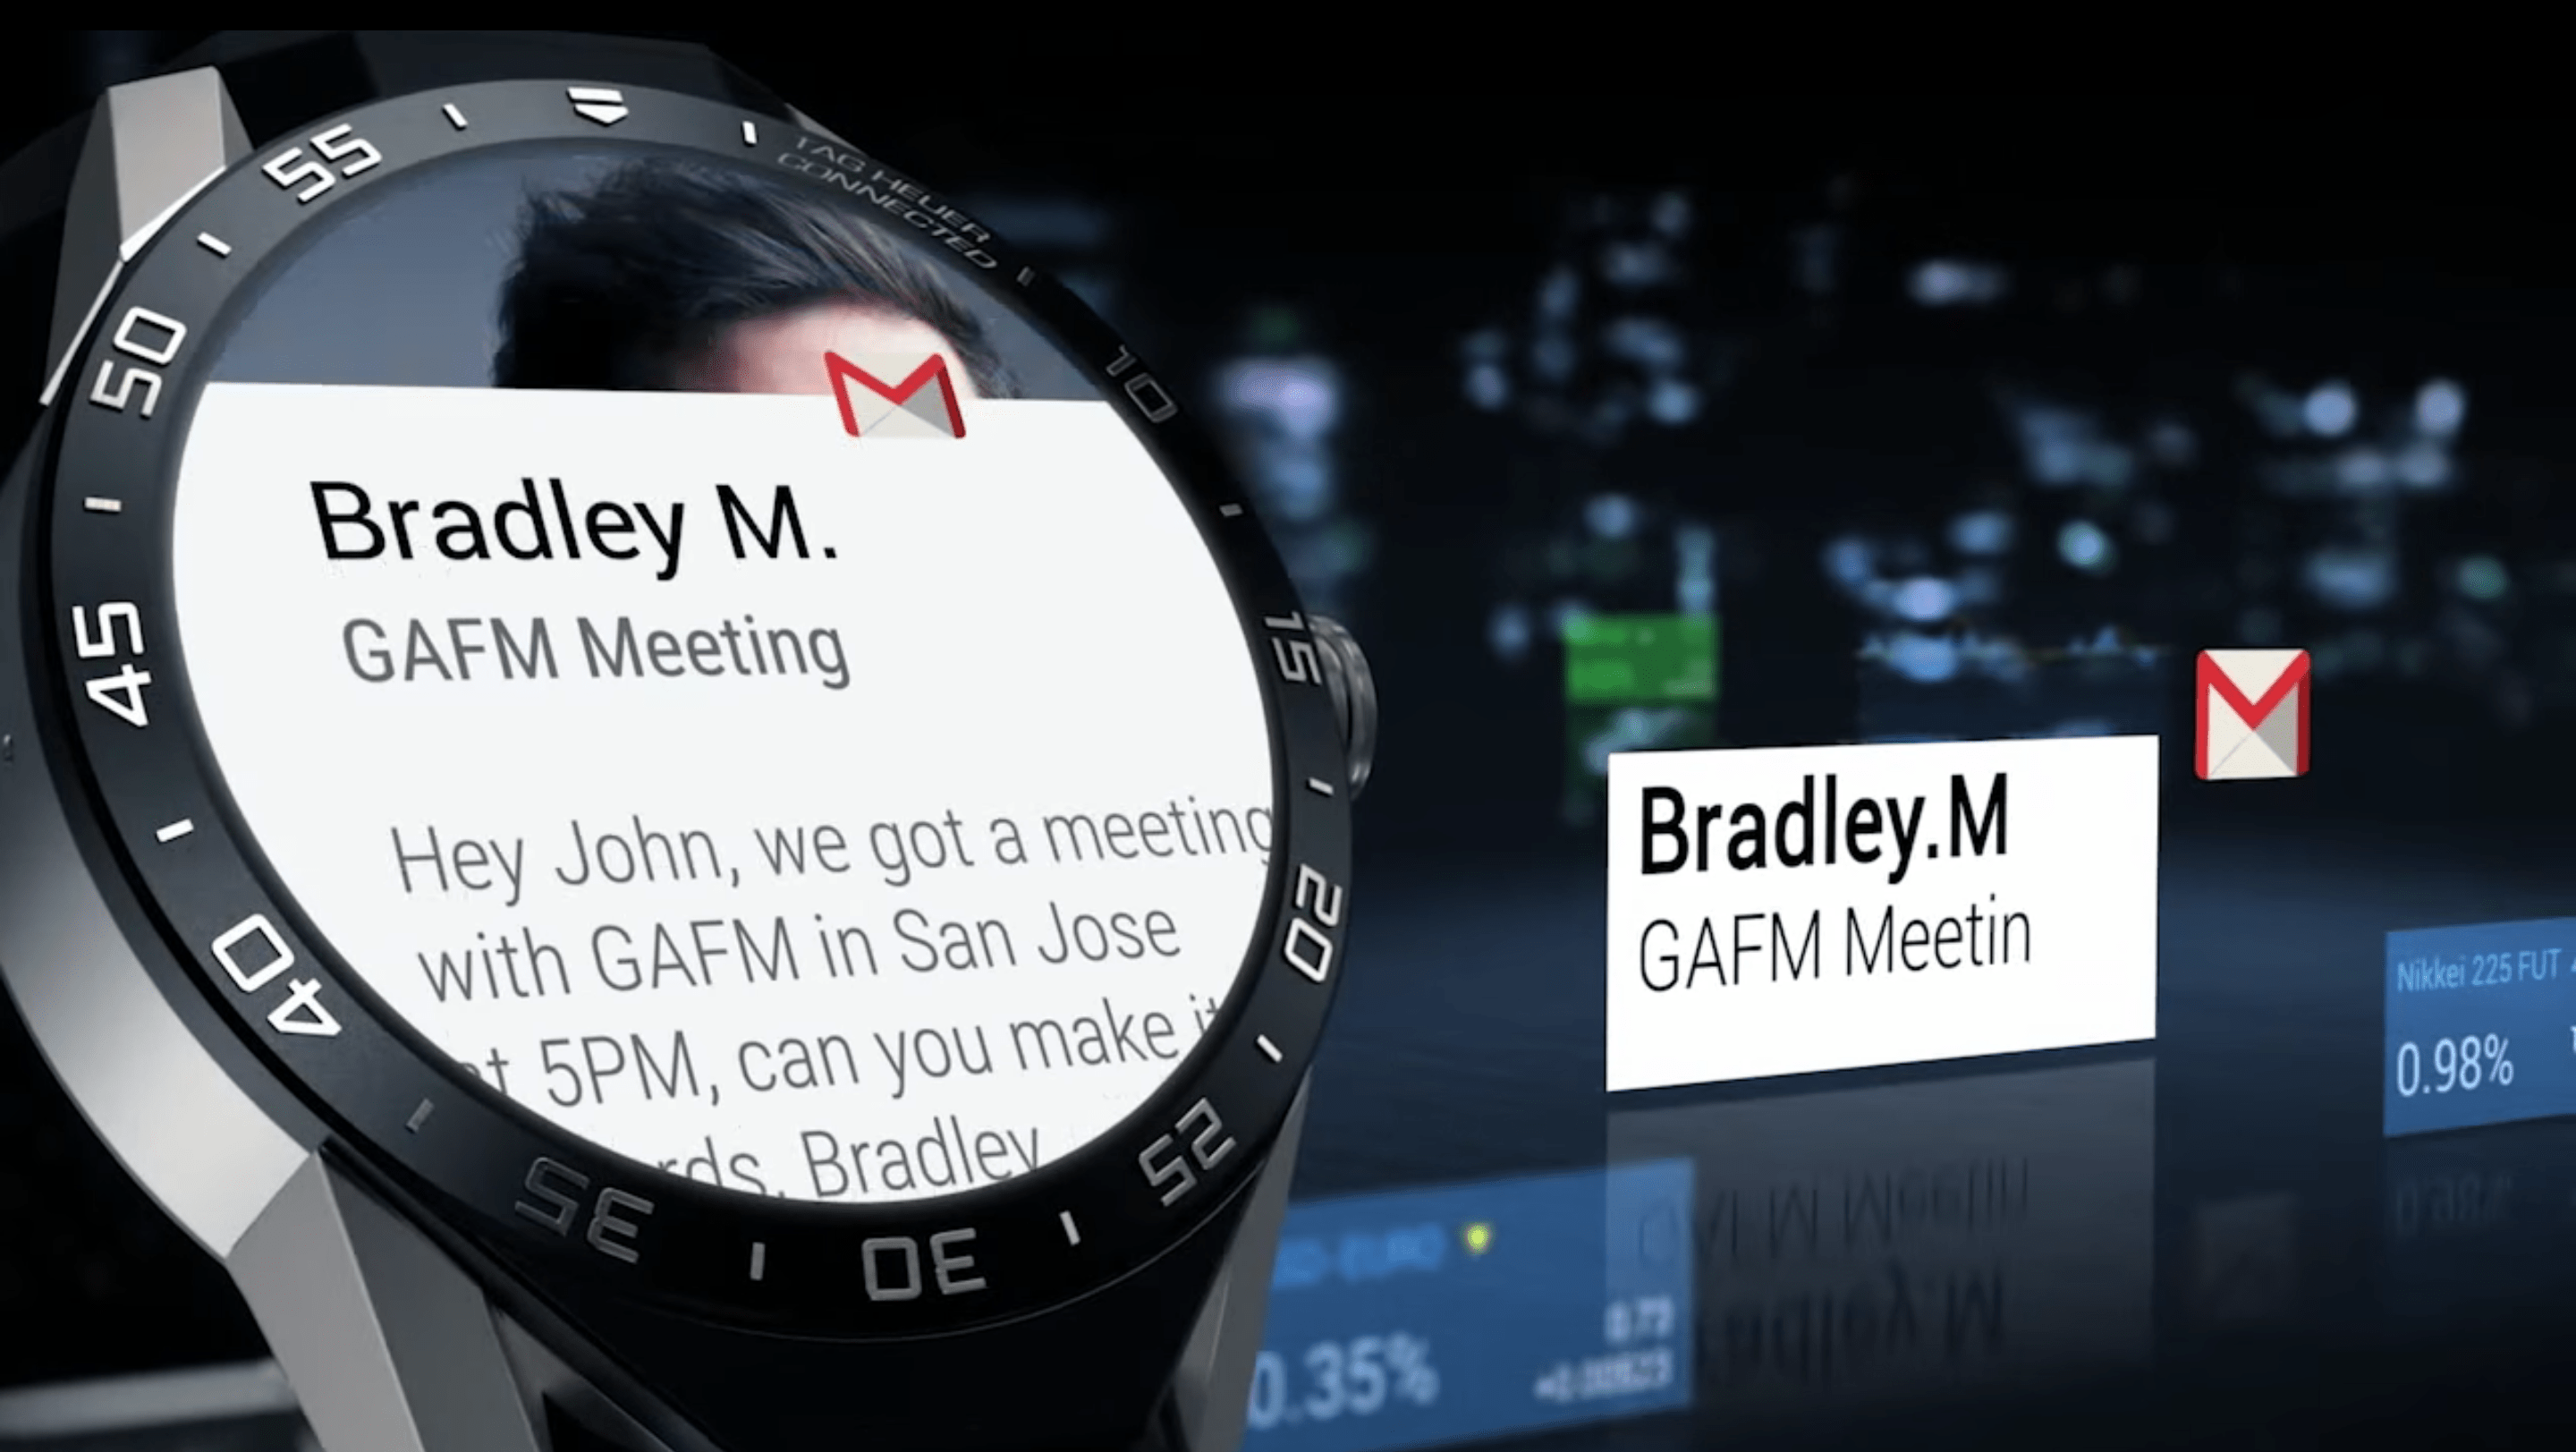 This is how Gmail looks on the Tag Heuer Connected Watch. Like the Moto 360, you'll notice how the round screen cuts off a lot of text.